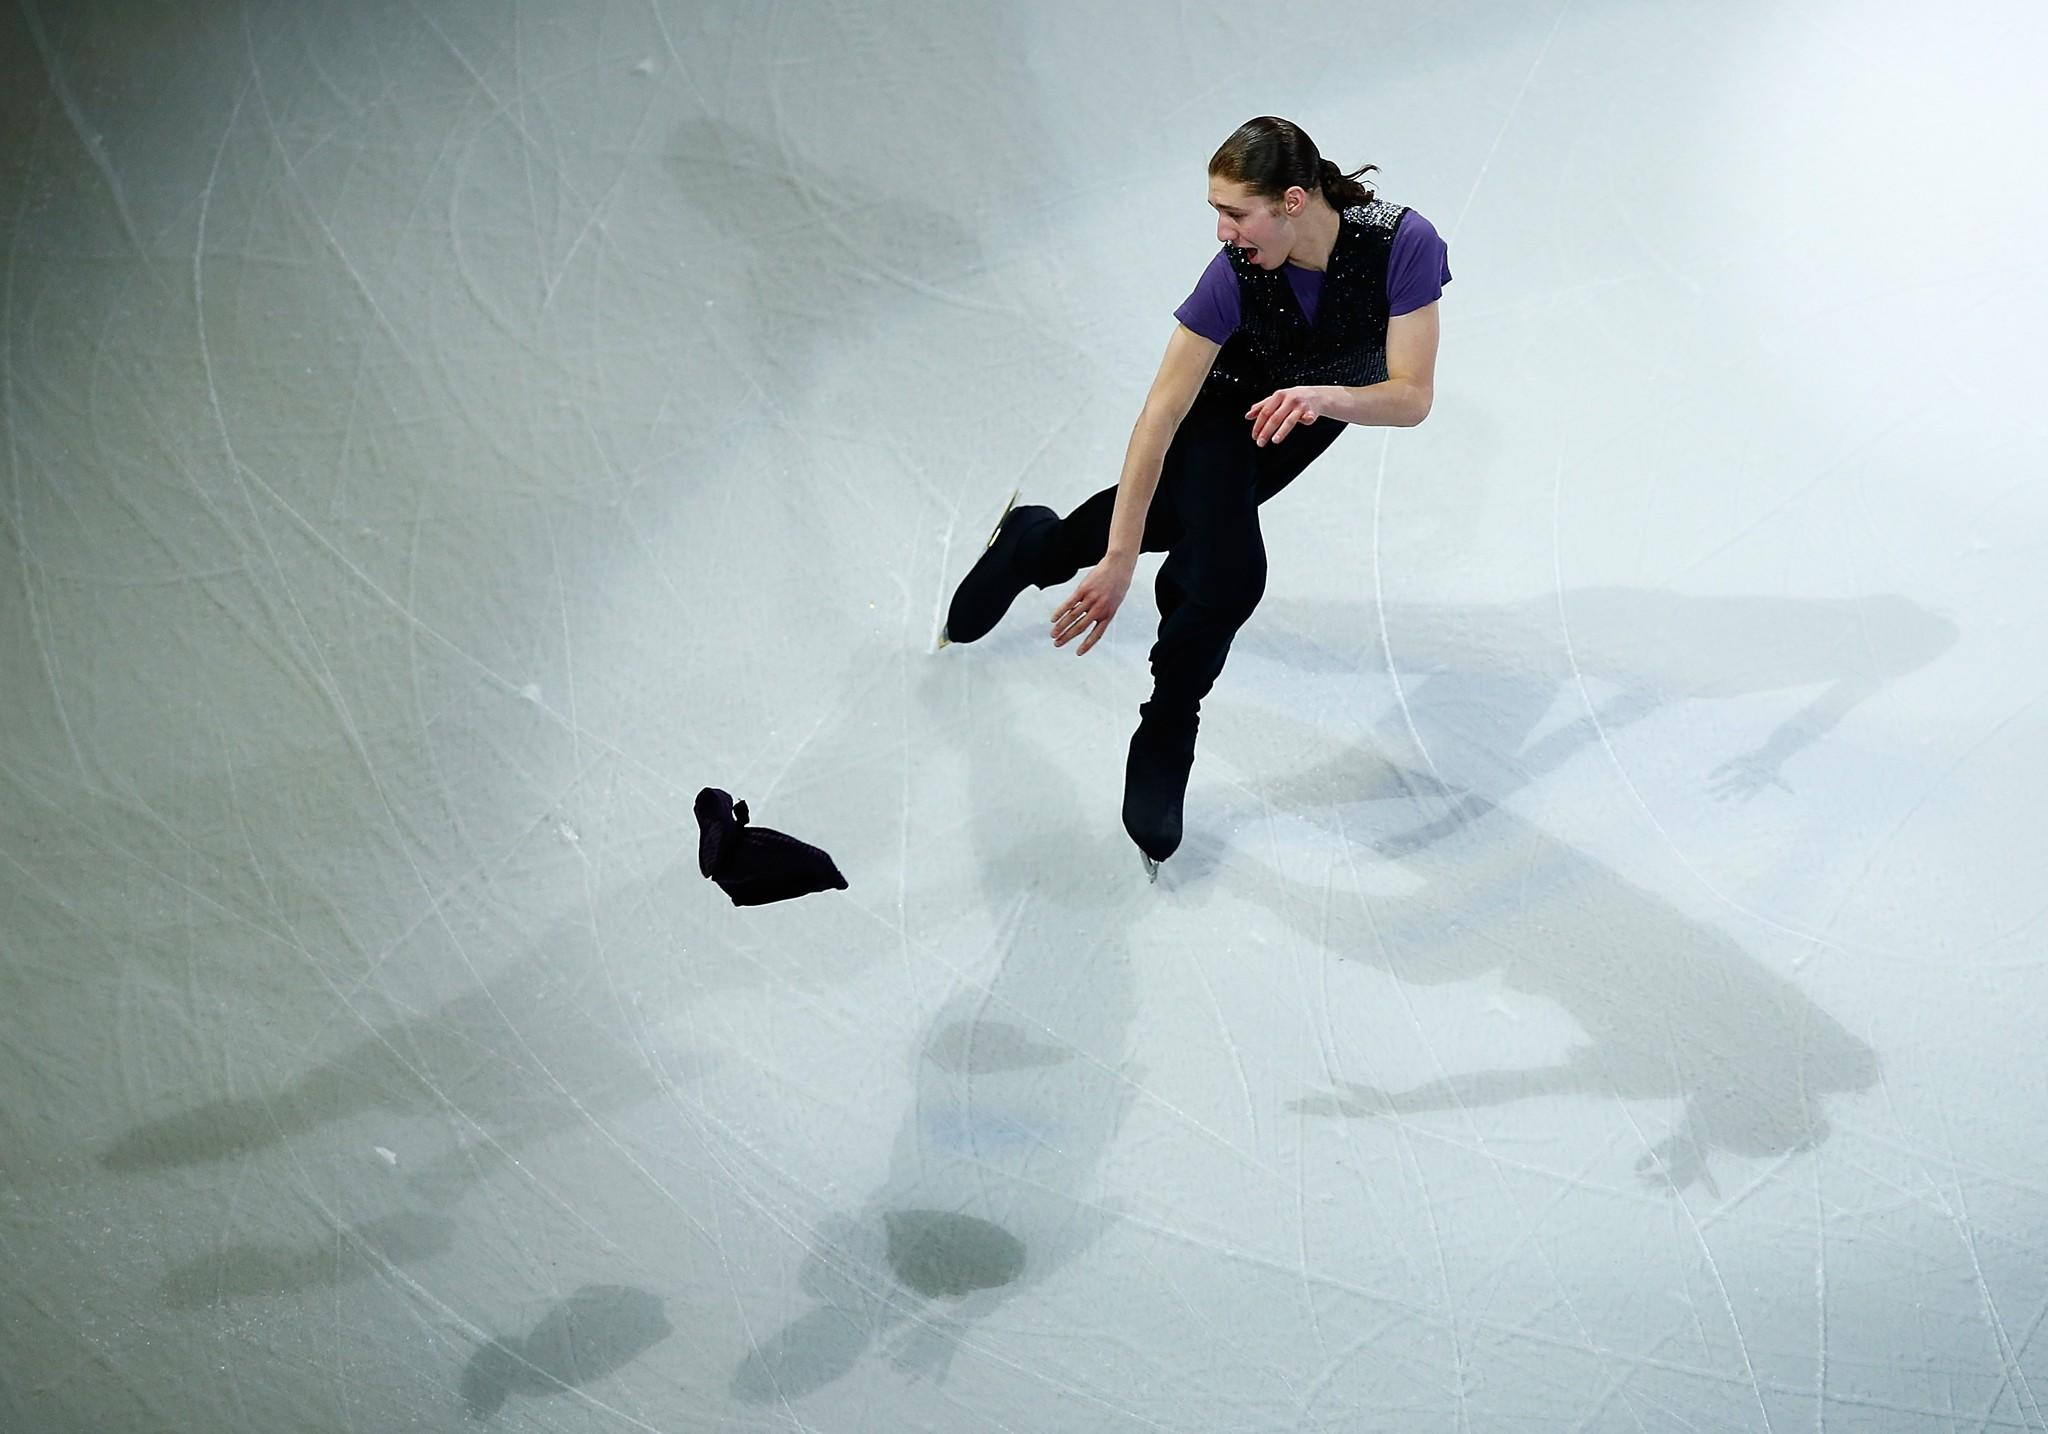 Jason Brown performs during the Smucker's Skating Spectacular following the Prudential U.S. Figure Skating Championships at TD Garden on January 12, 2014 in Boston, Massachusetts.